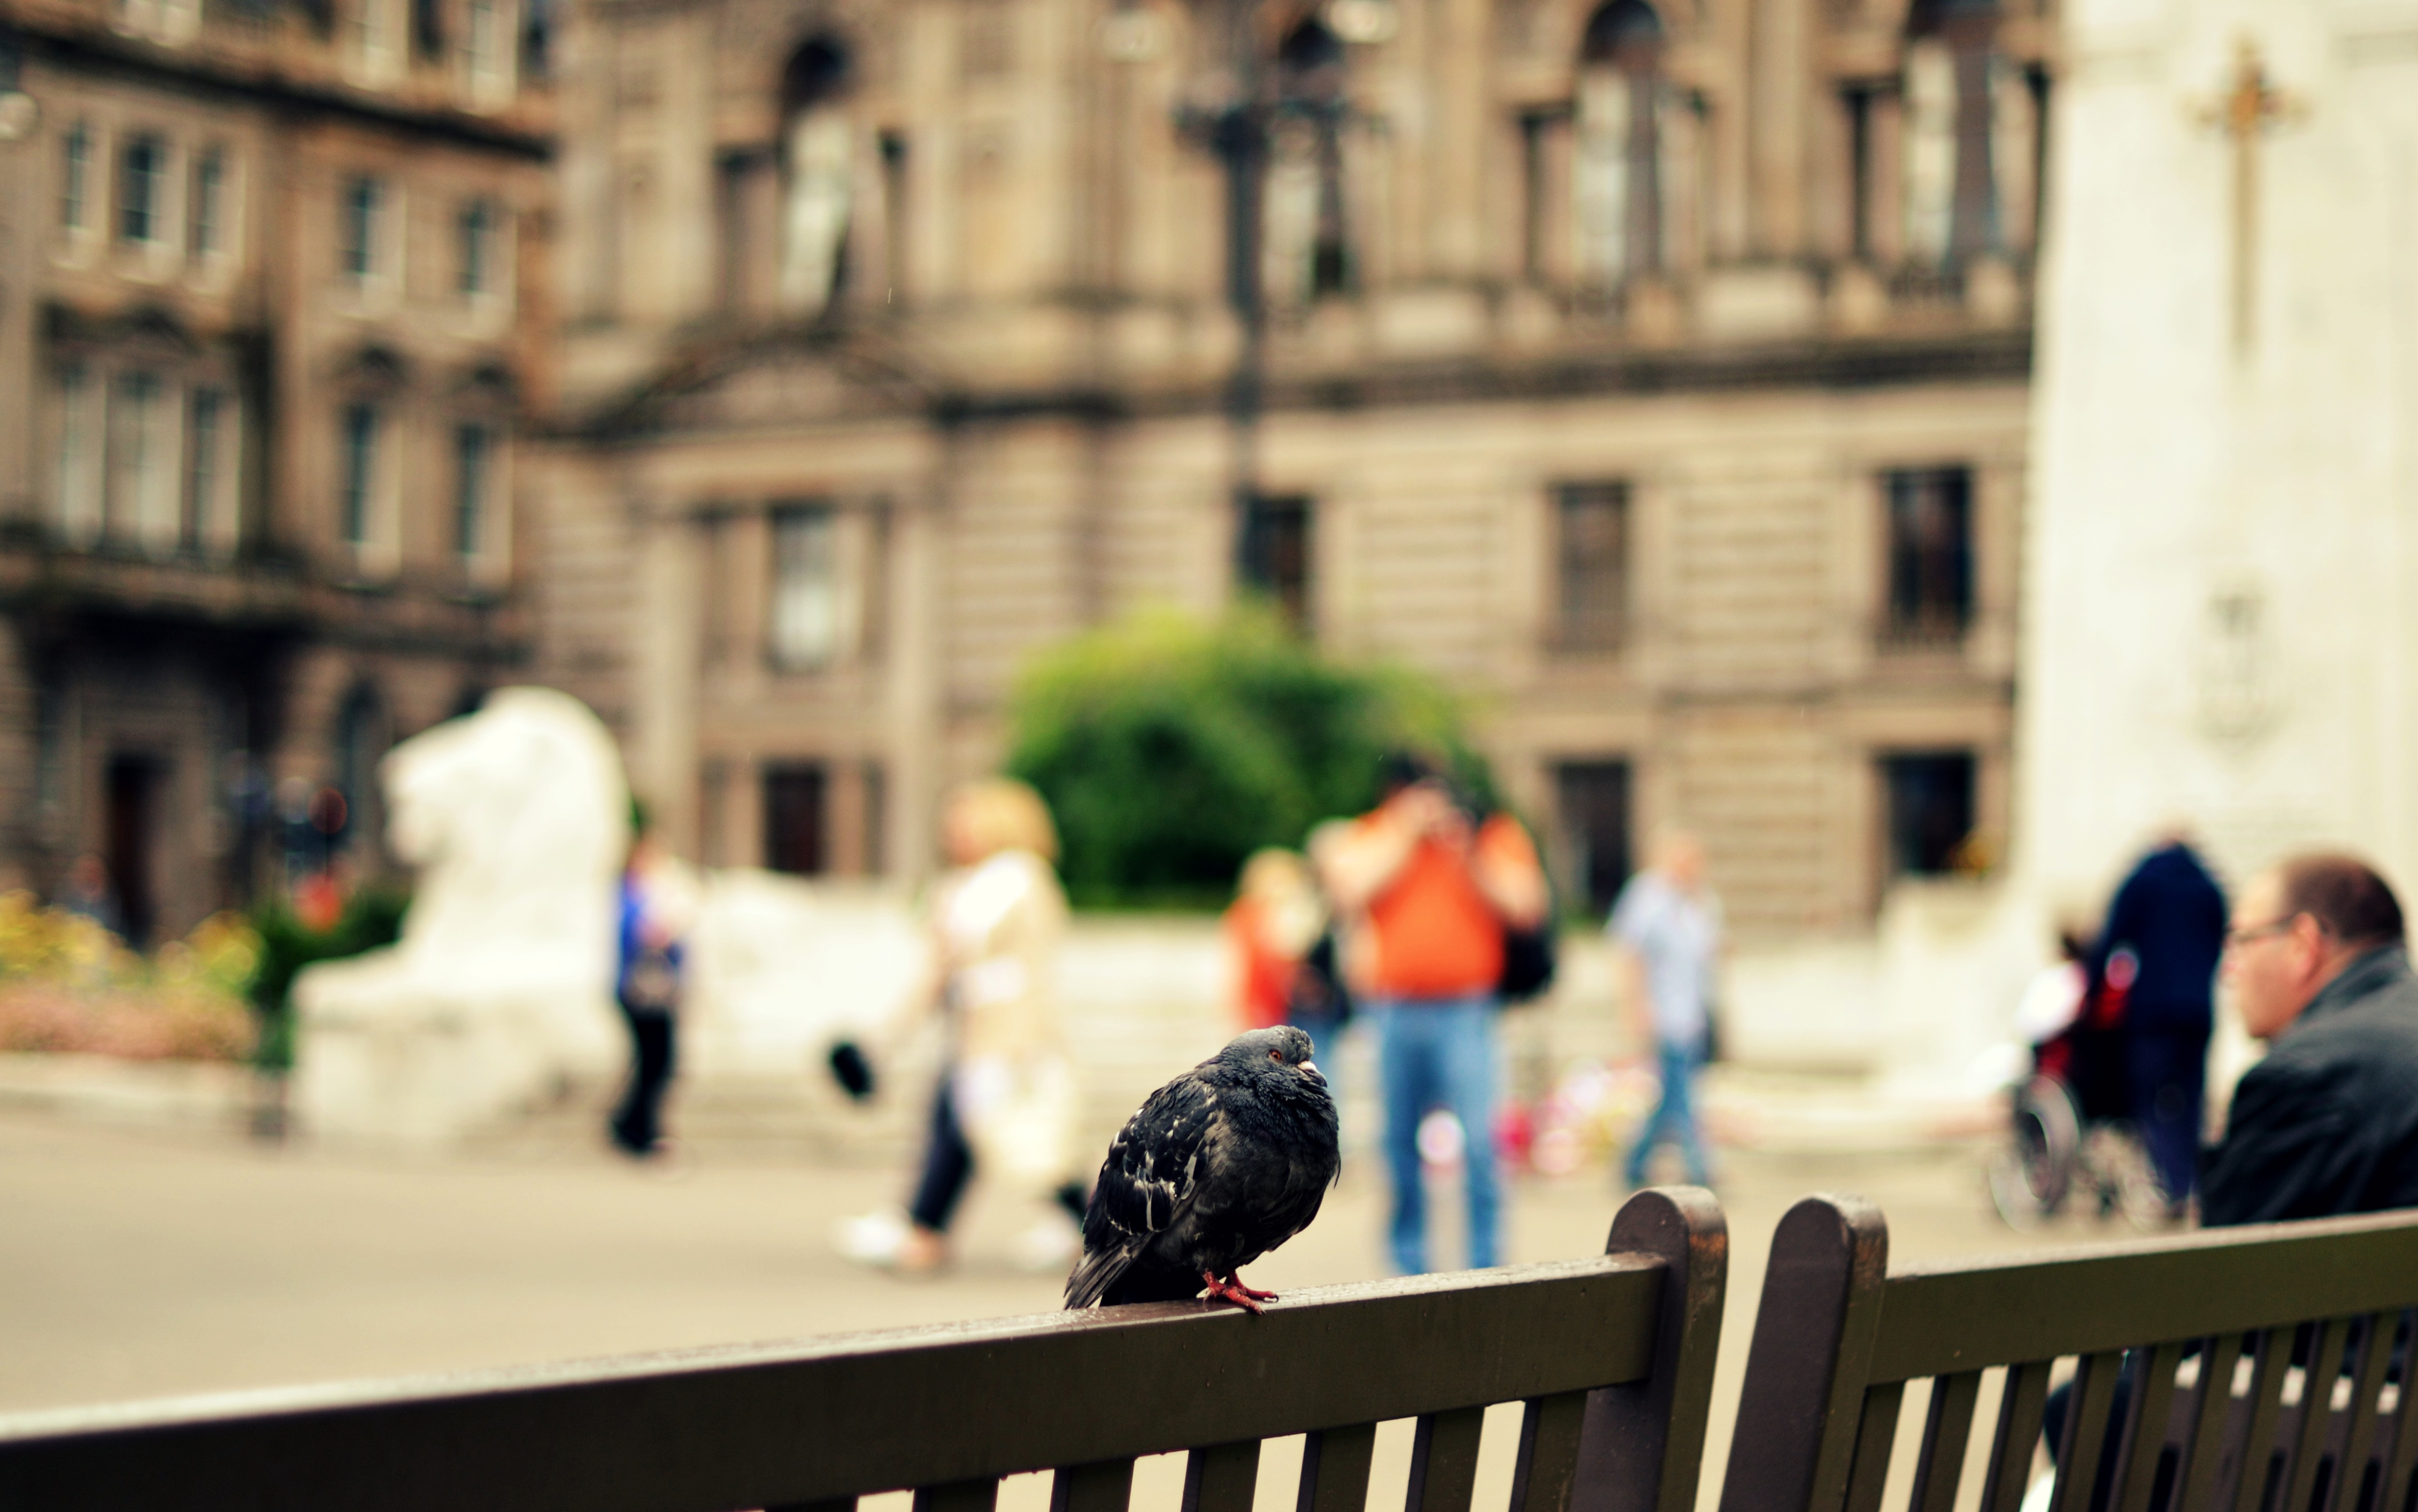 Pigeons at George Square, Glasgow.